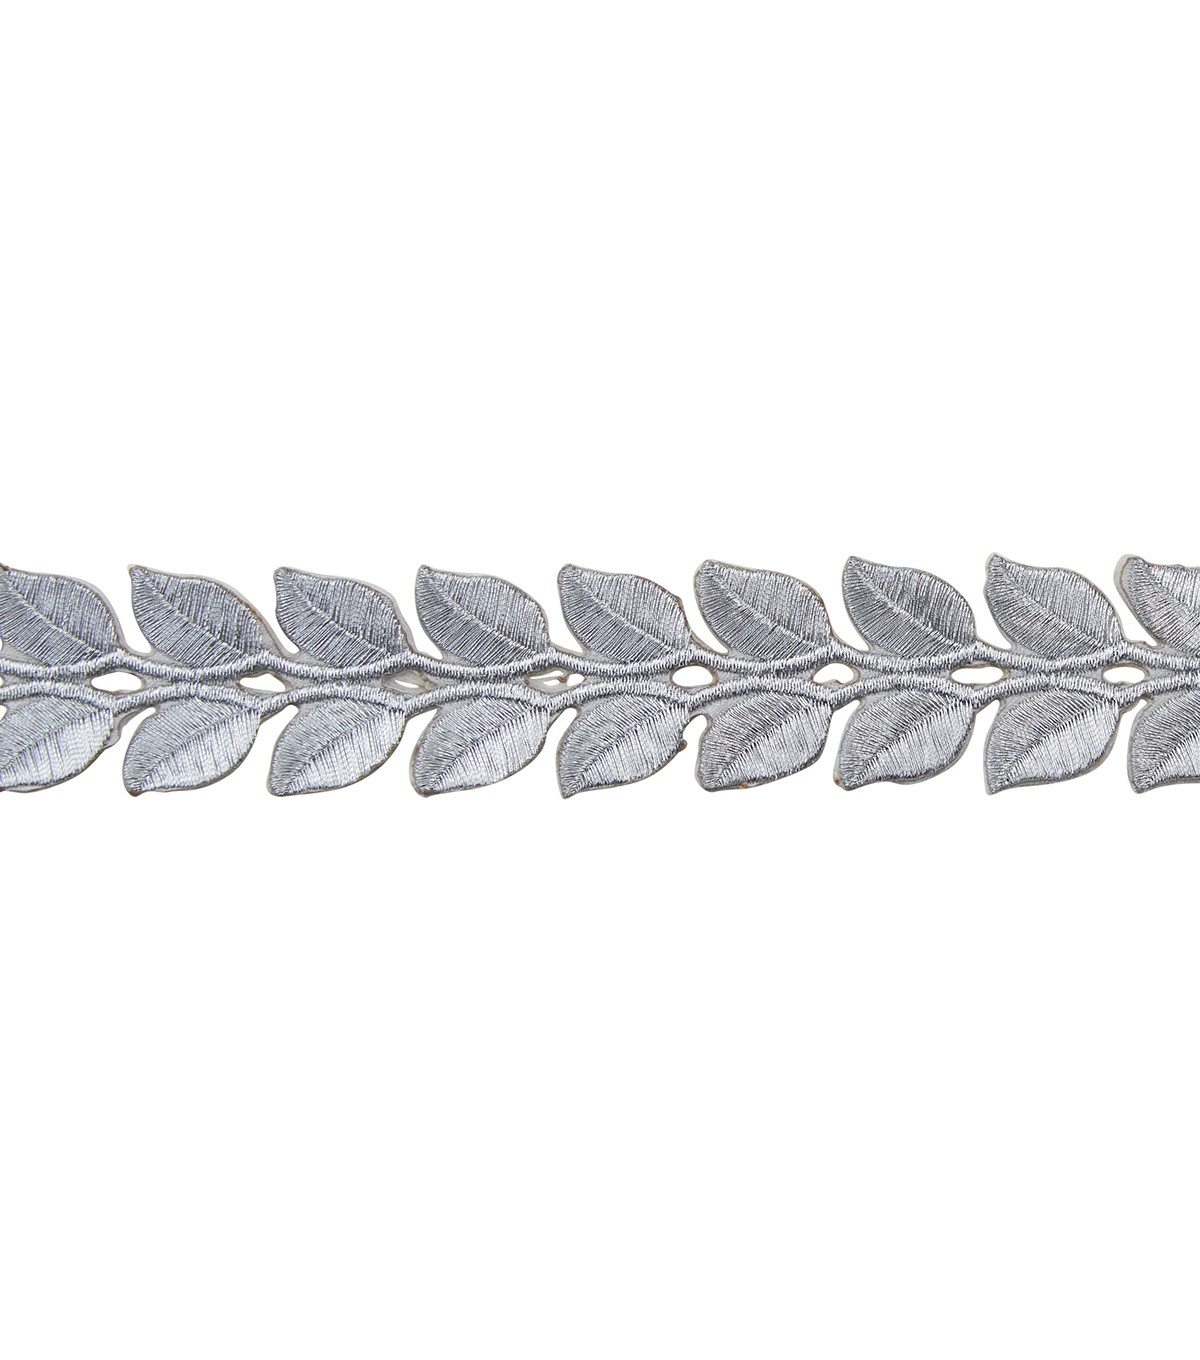 Yaya Han Collection Silver Roman Leaf Trim